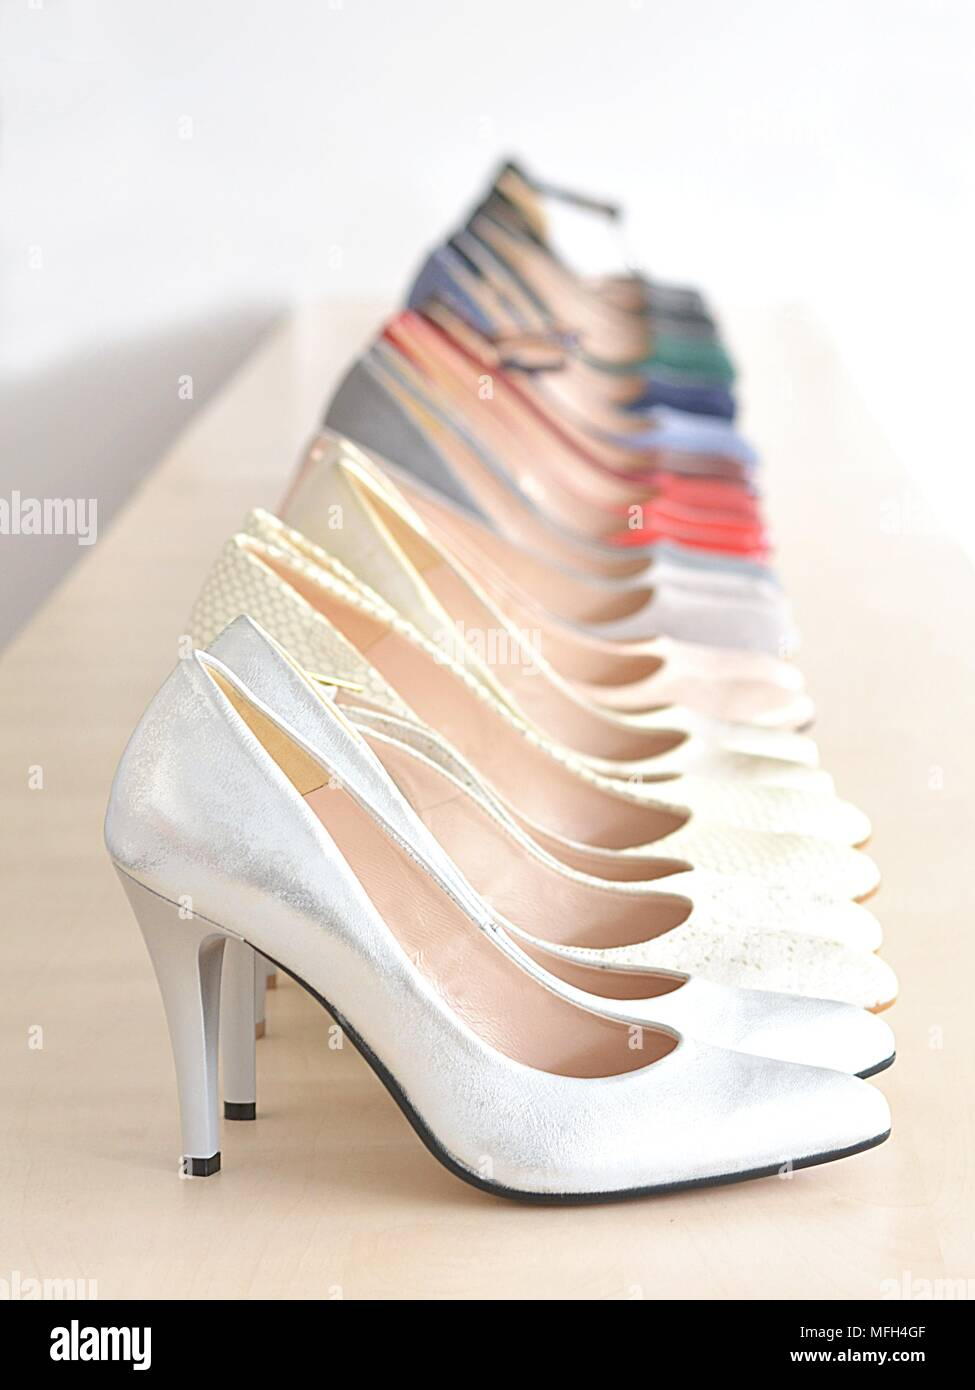 indoor store with ladies shoes - Stock Image